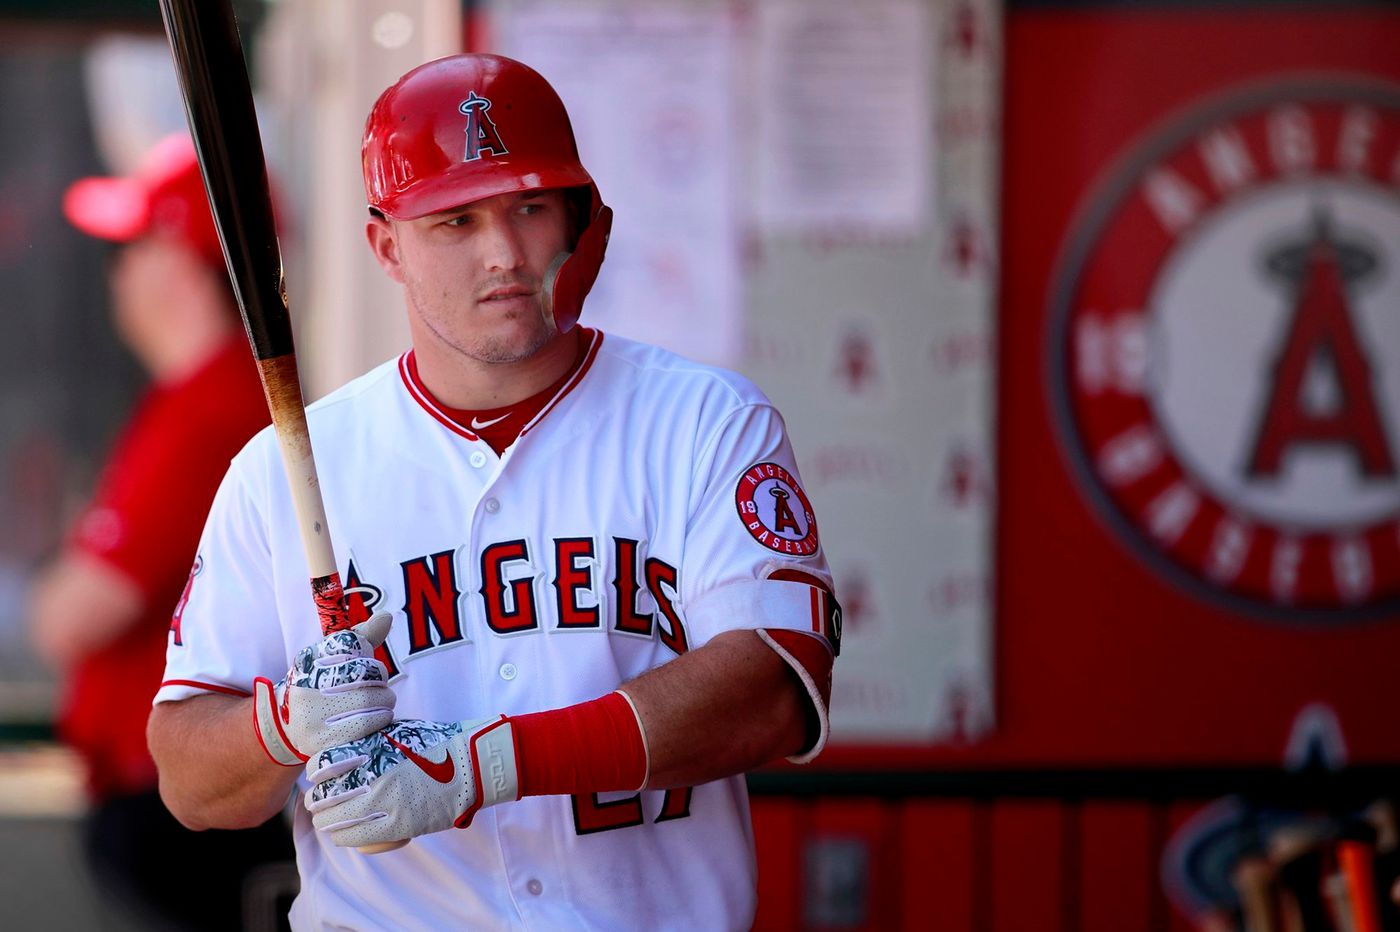 Mike Trout-to-Phillies was never more than wishful thinking, as $430 million extension with Angels shows | Analysis